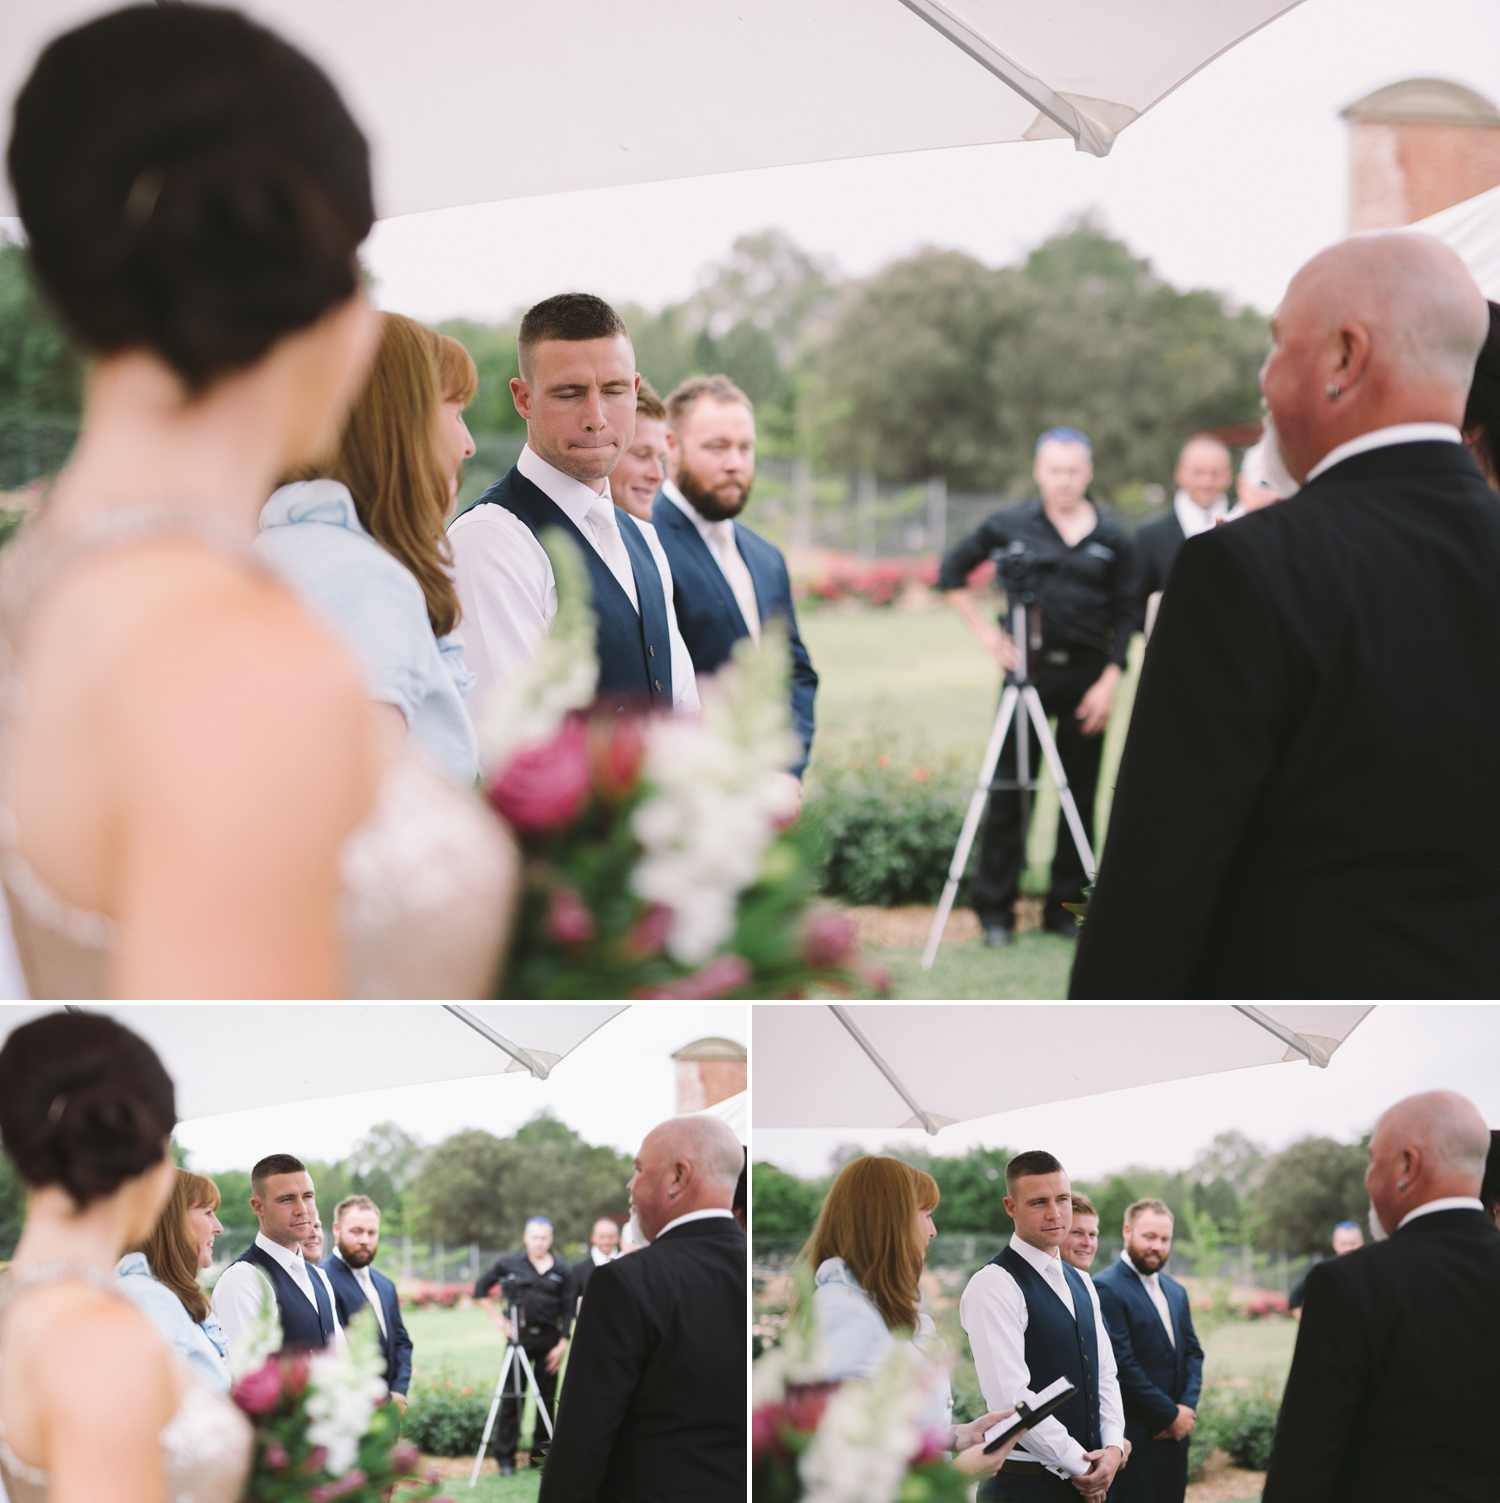 carla-dale-adelaide-wedding-photographer-36